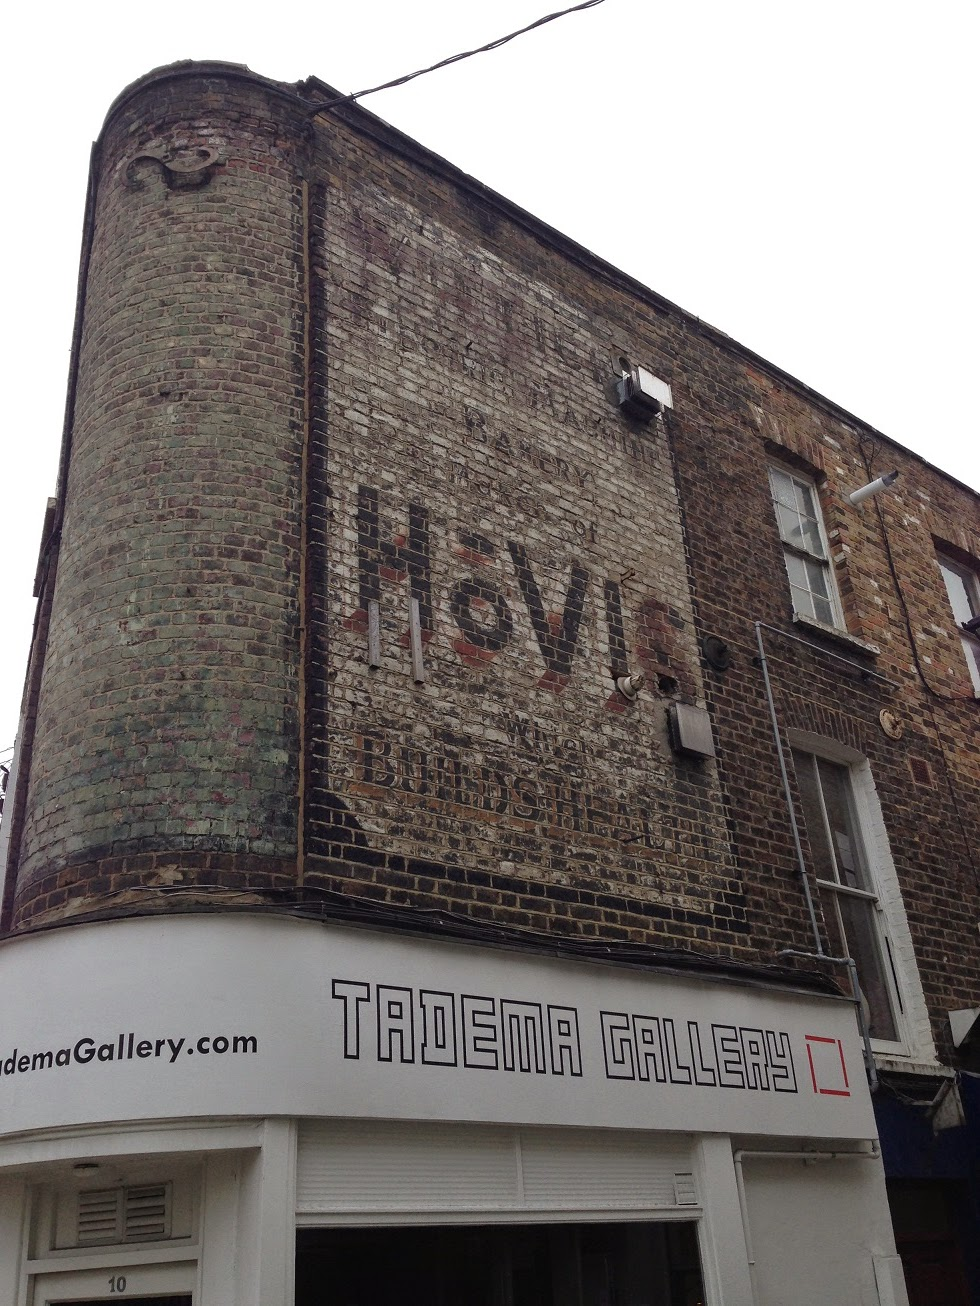 Ghost sign, Islington, London